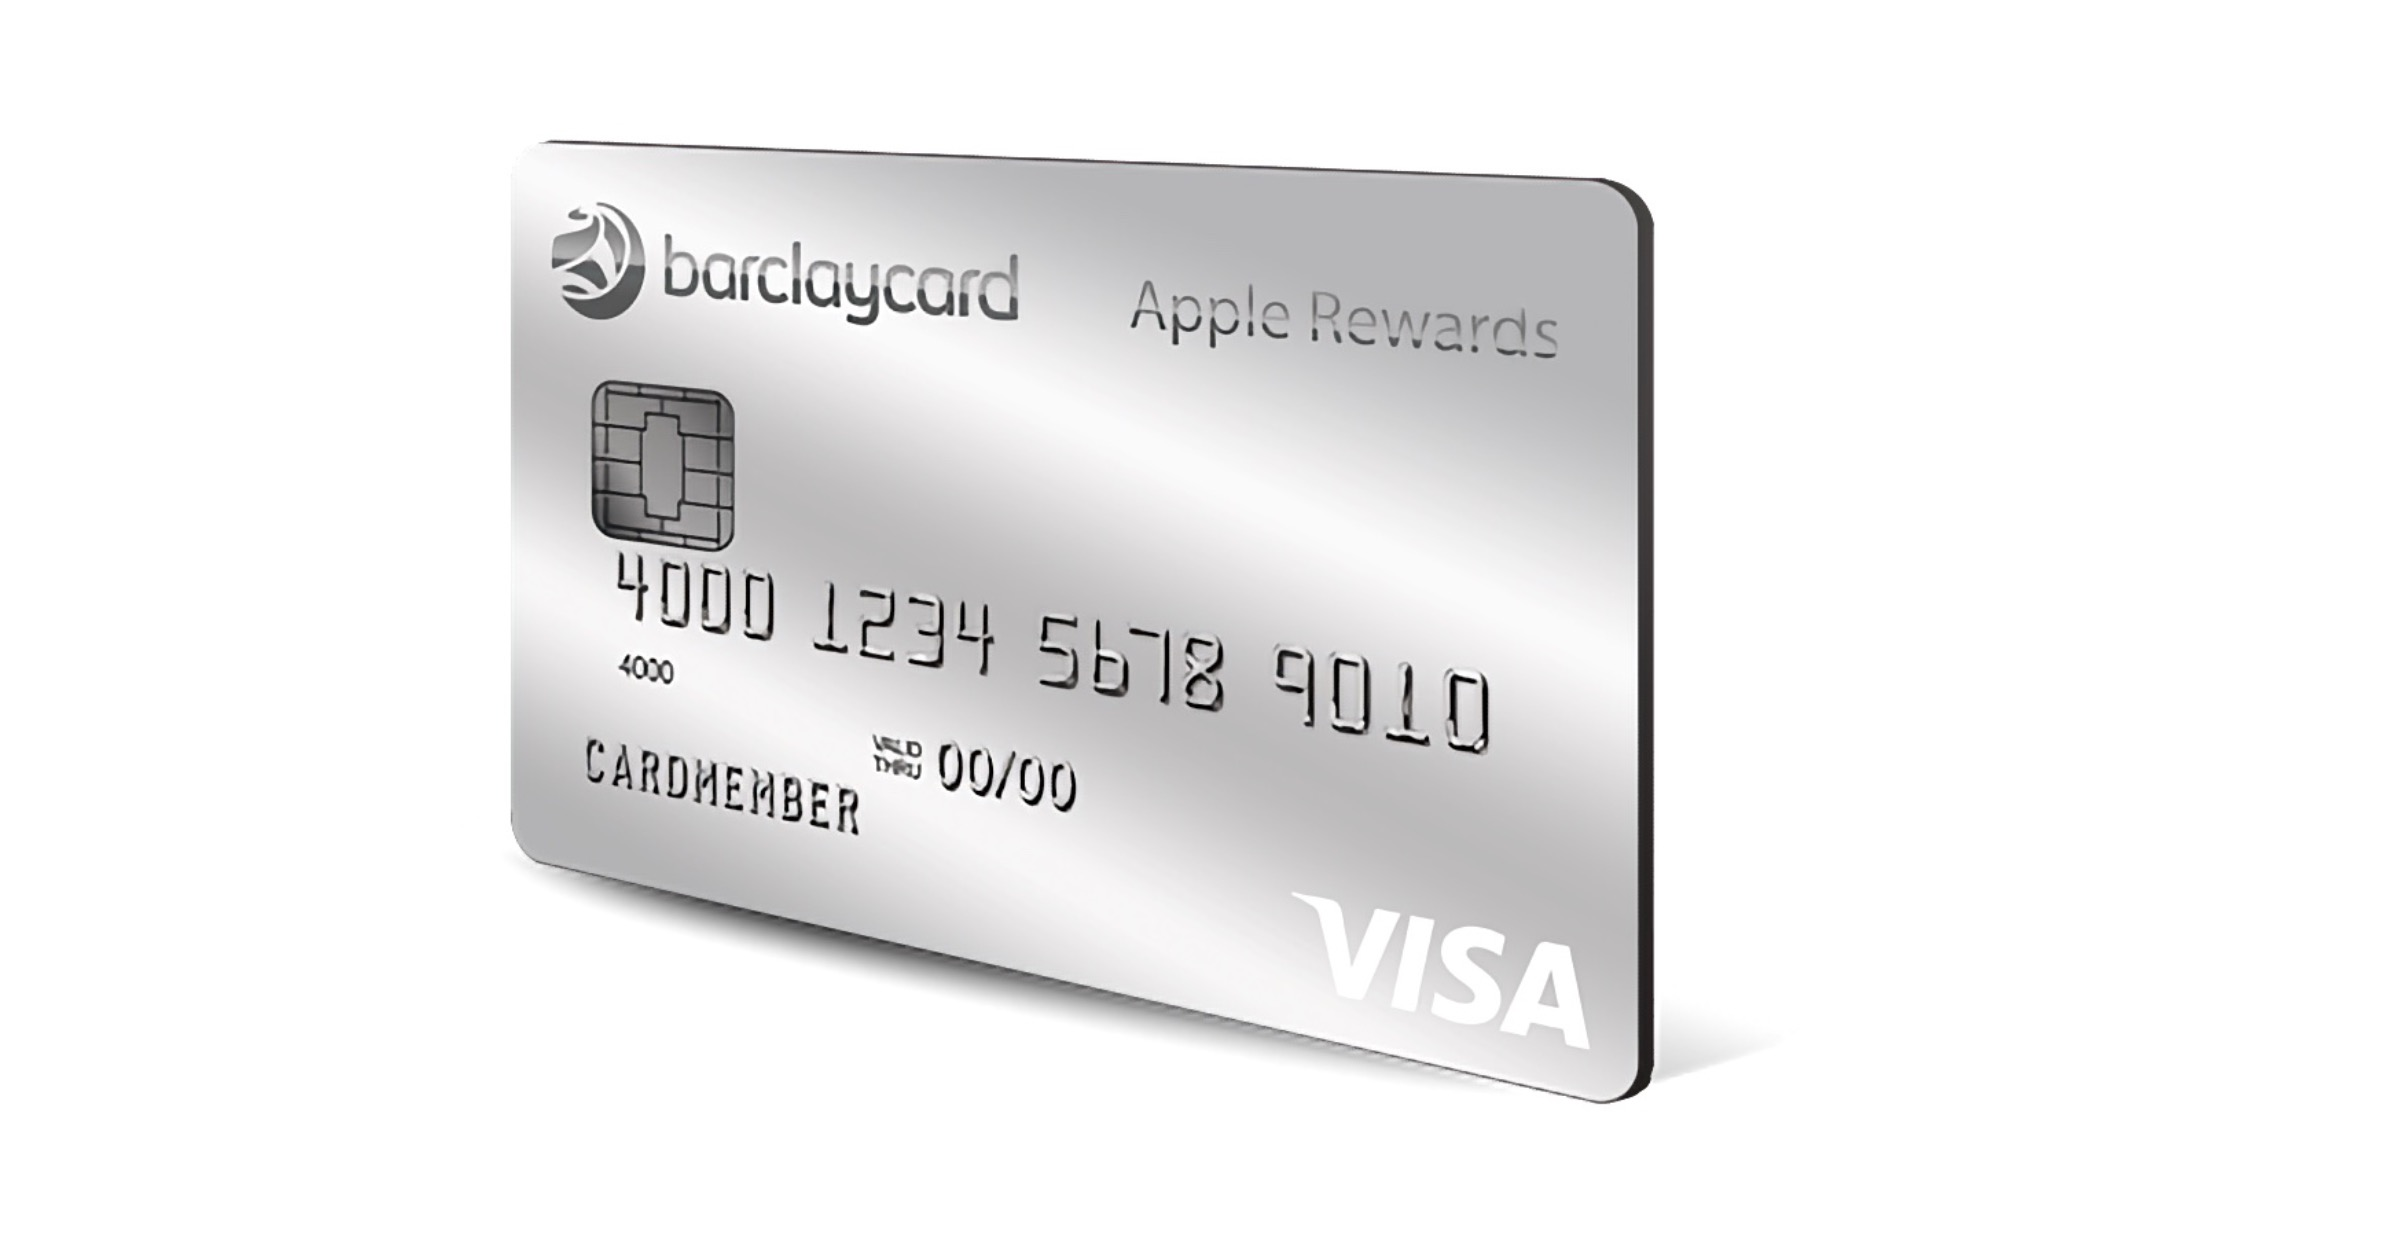 Apple Ends Barclays Rewards Card to Focus on Apple Card - The Mac